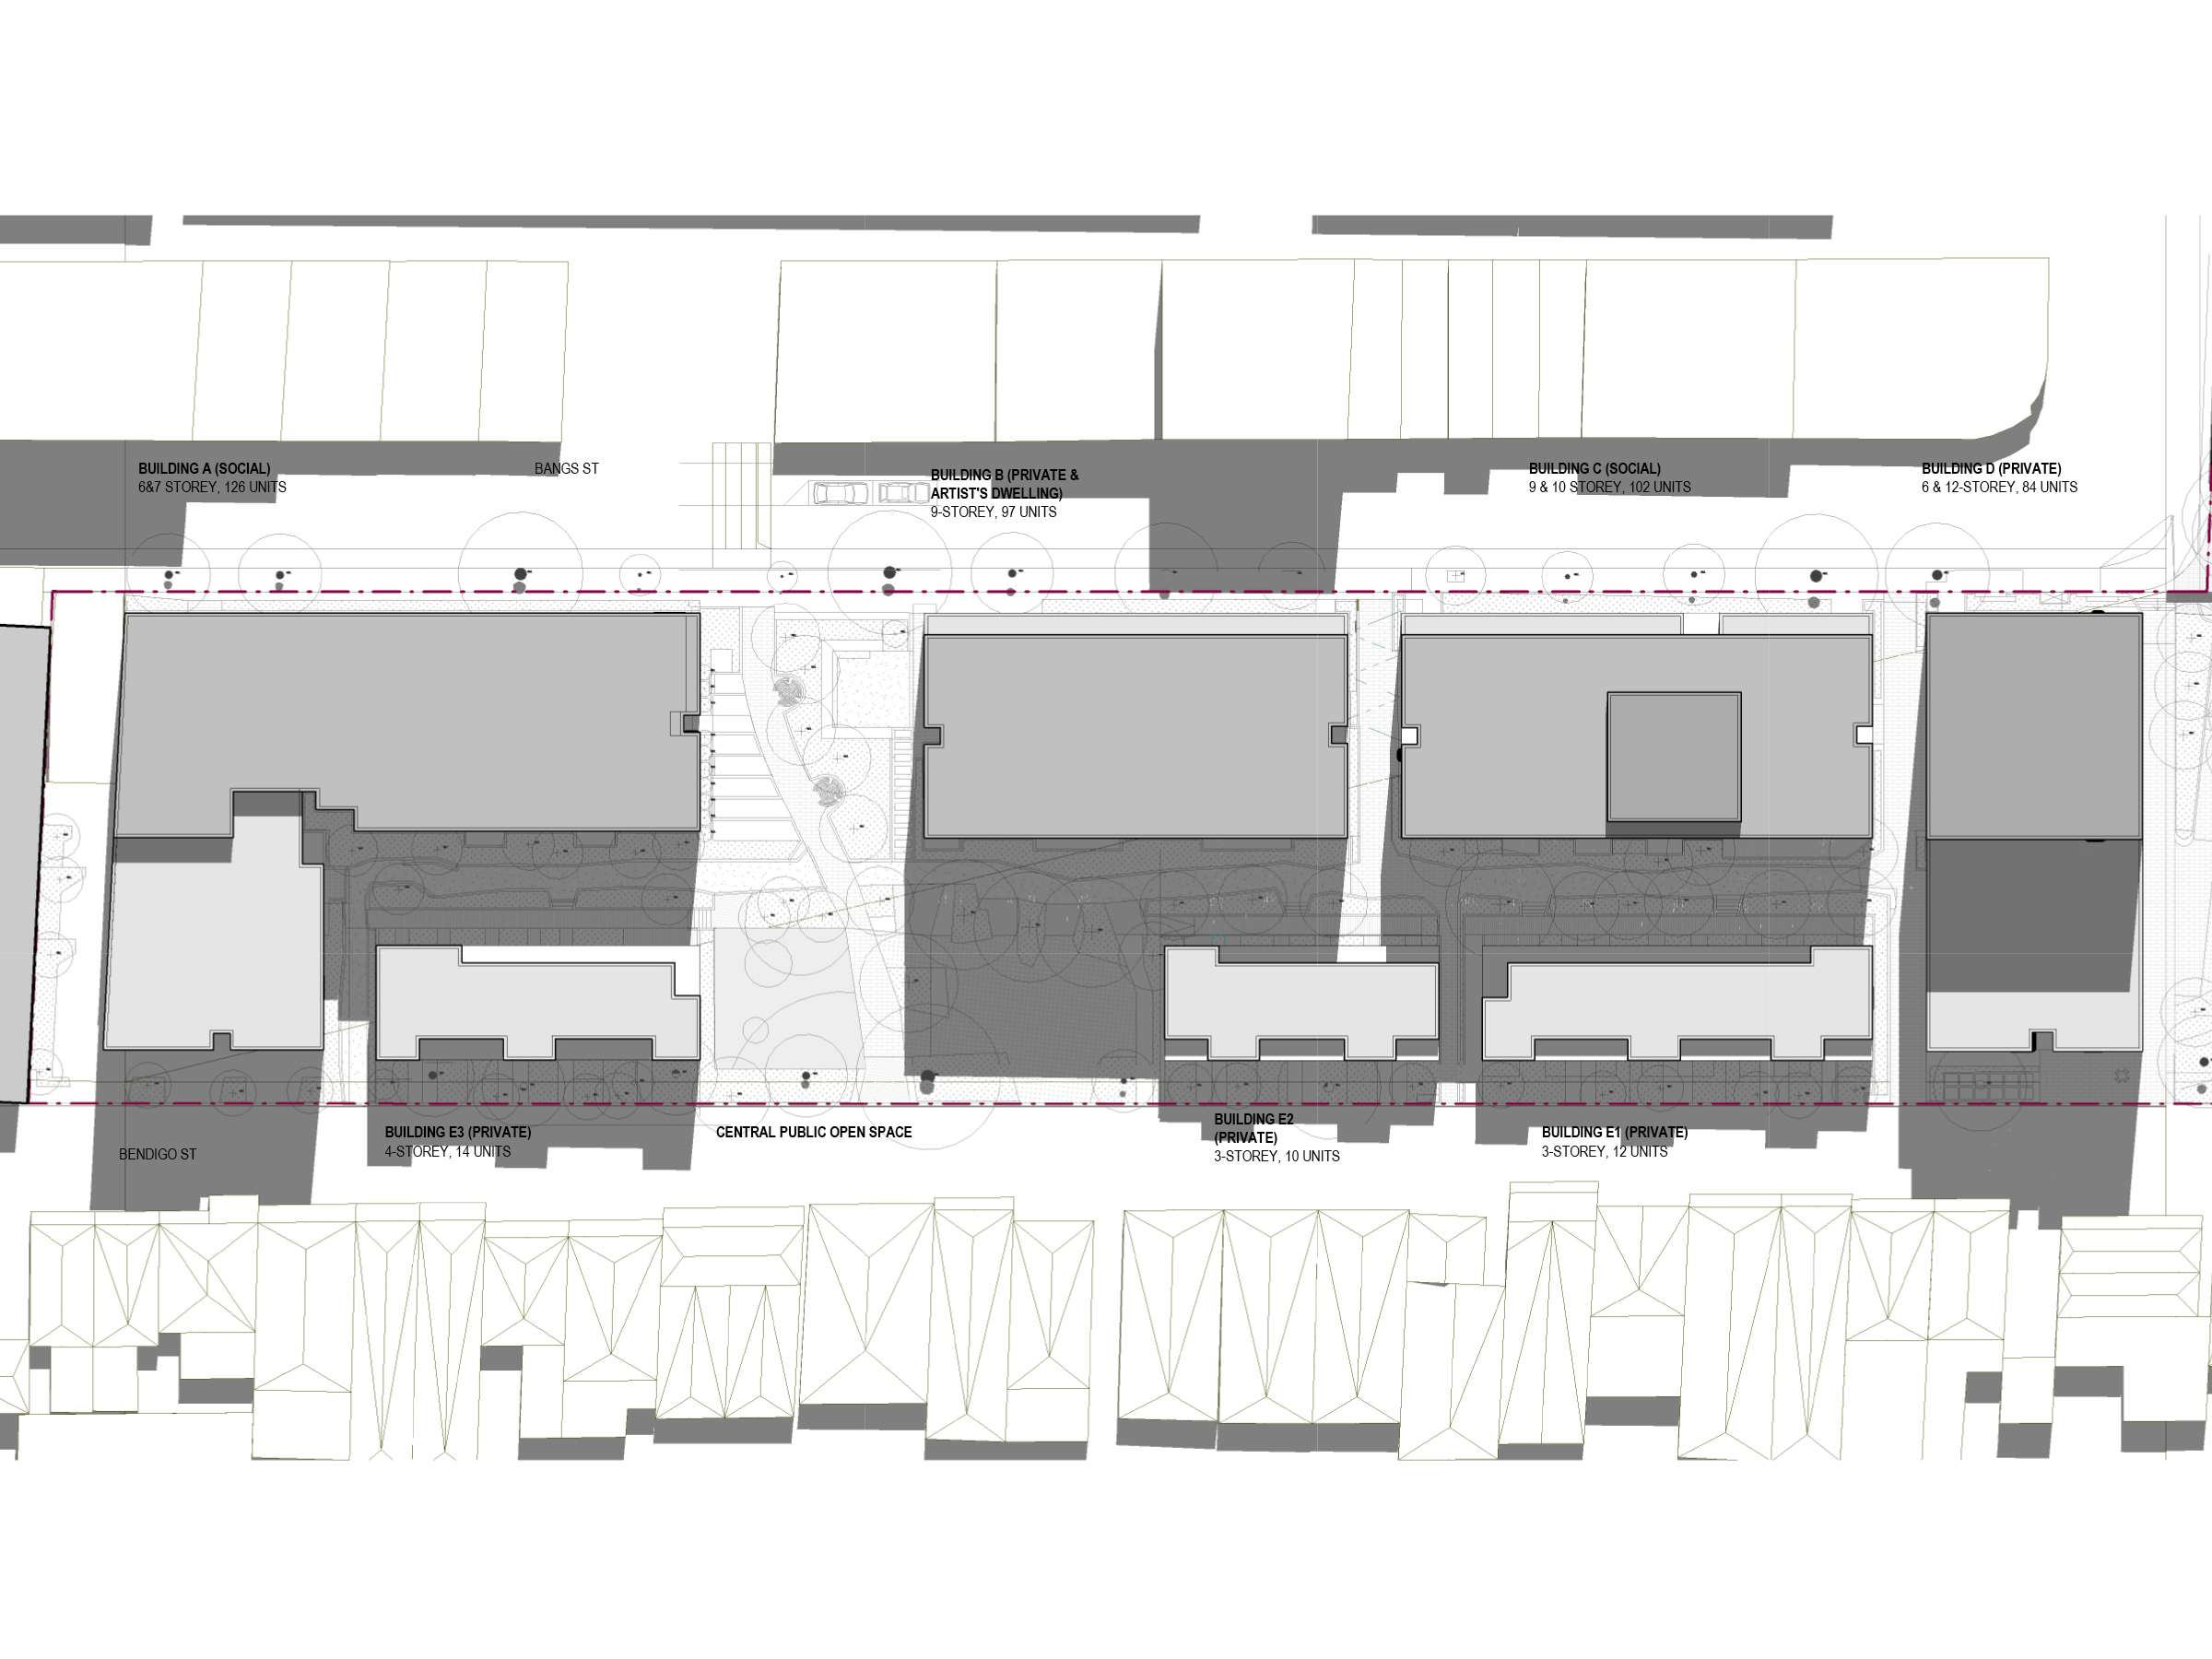 Diagram showing the shadows created by the new development in December at 3pm